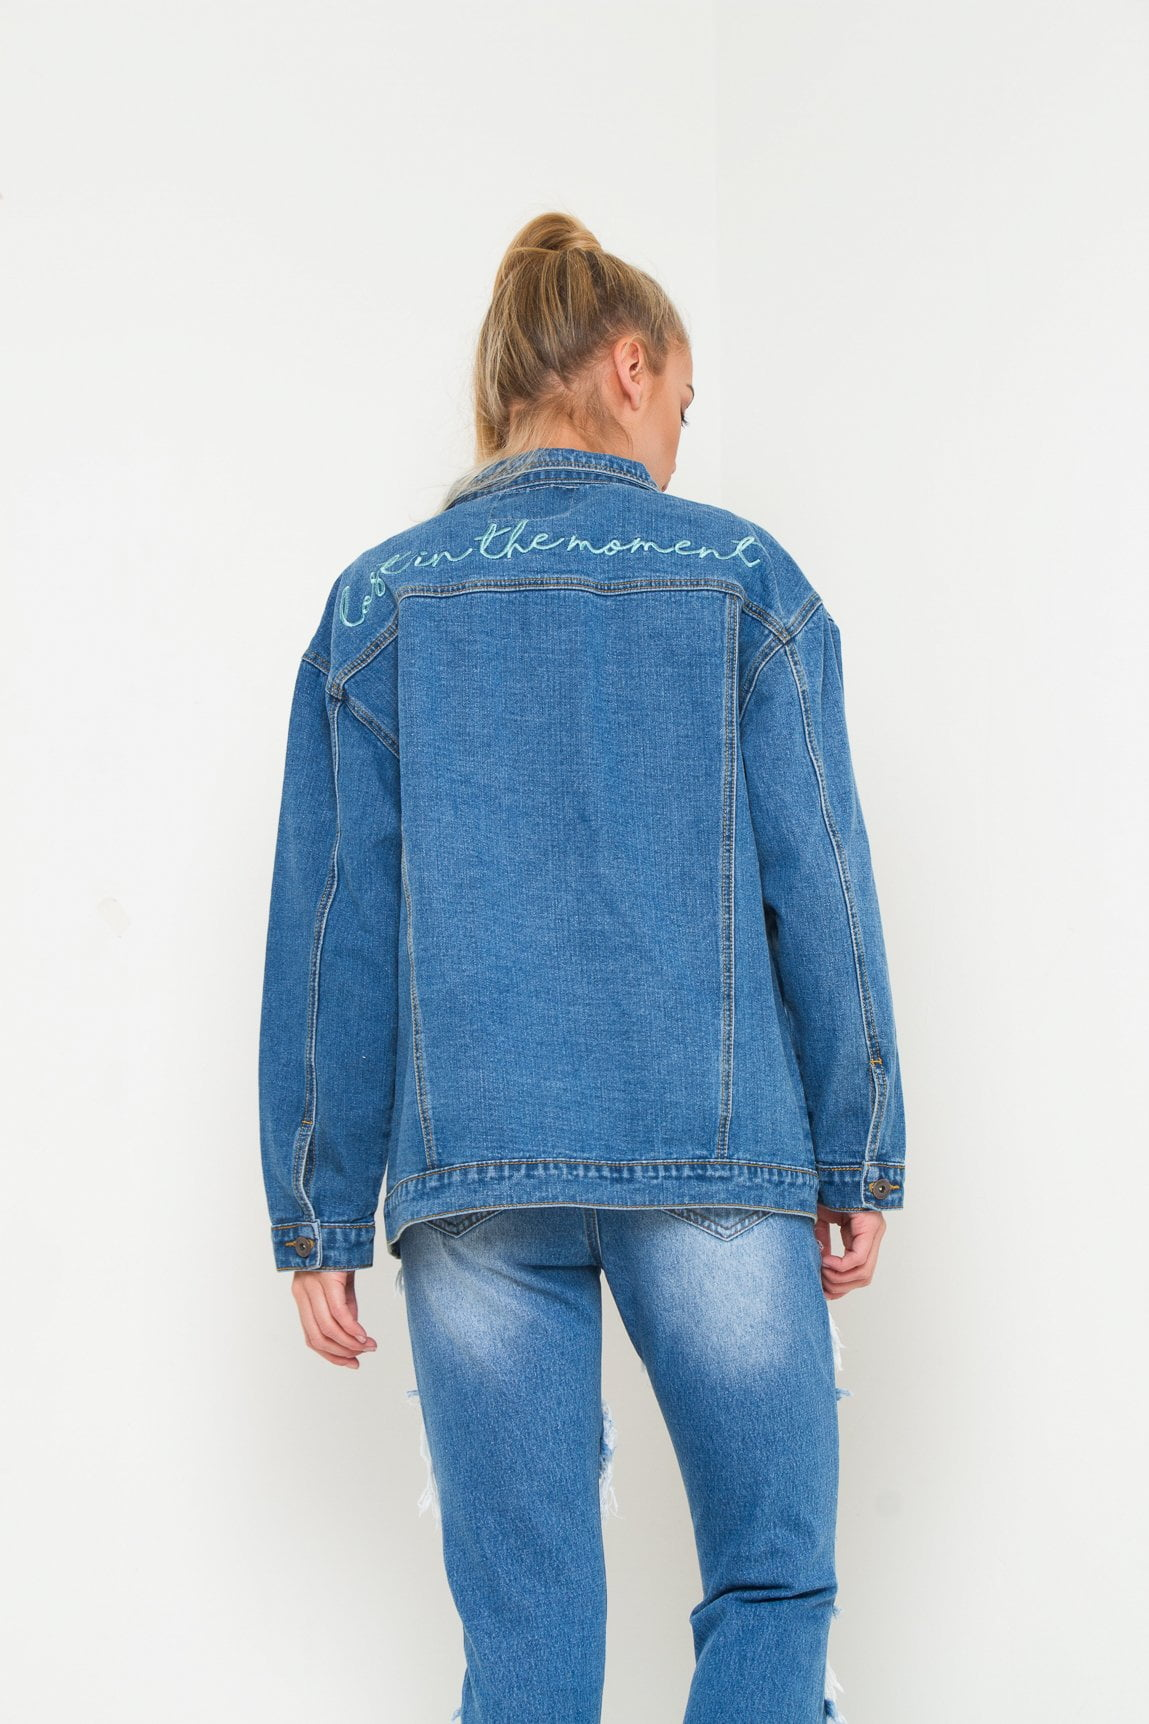 BOYFIEND DENIM JACKET WITH EMBROIDERY LOST IN MOMENT JACKET